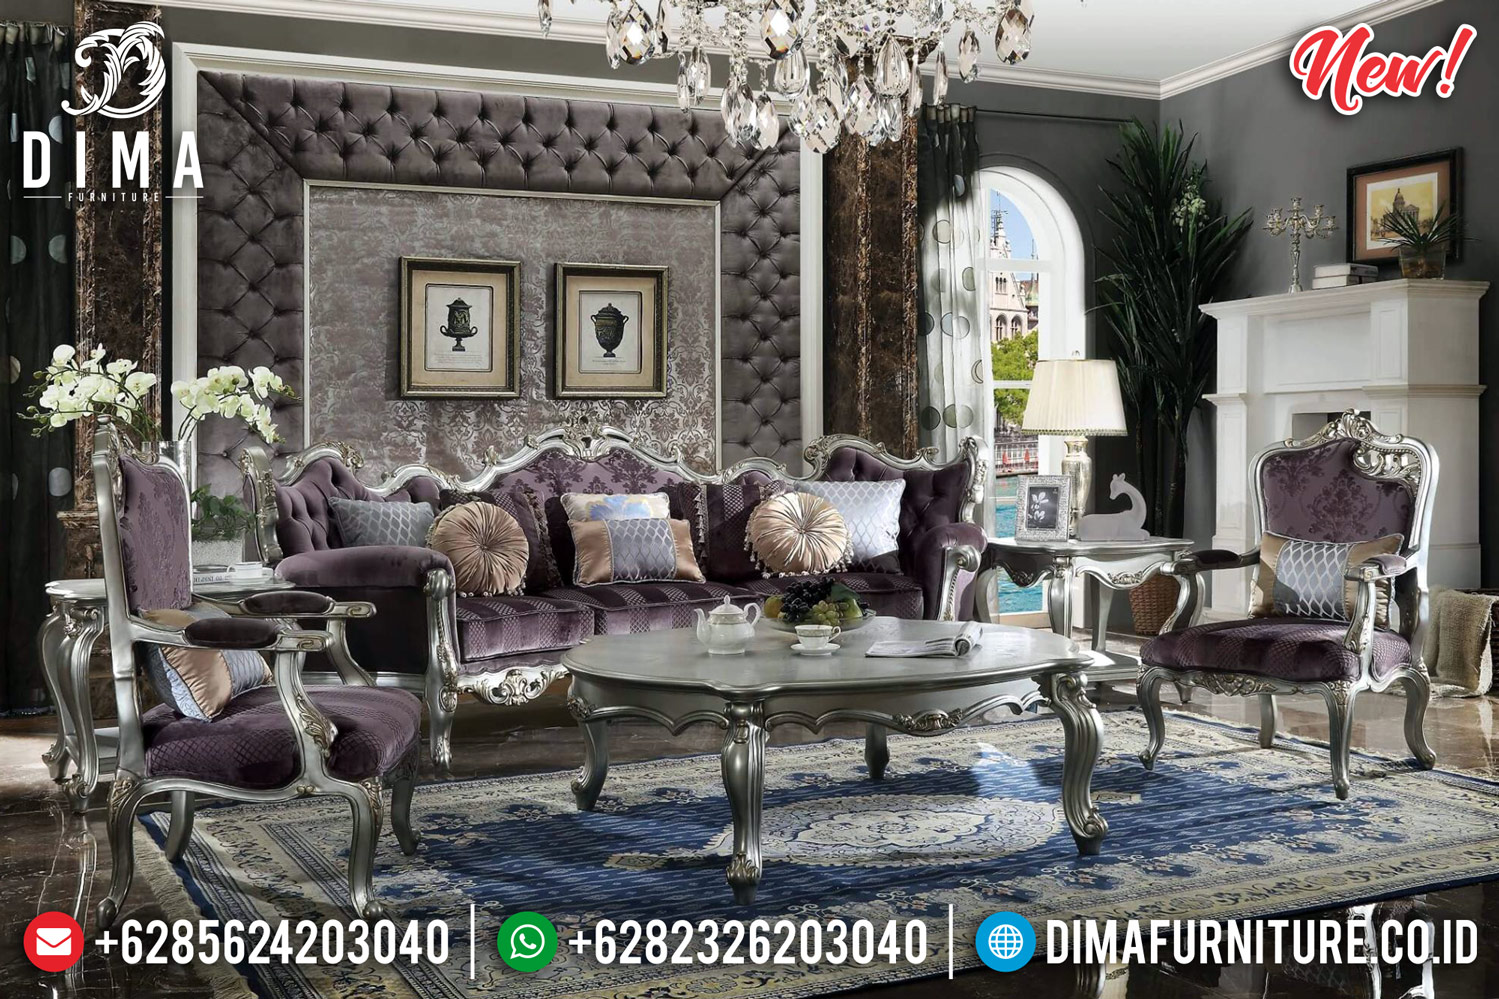 Koltuk Turkey Sofa Tamu Ukiran Jepara Luxury Classic Best Seller Furniture TTJ-0806